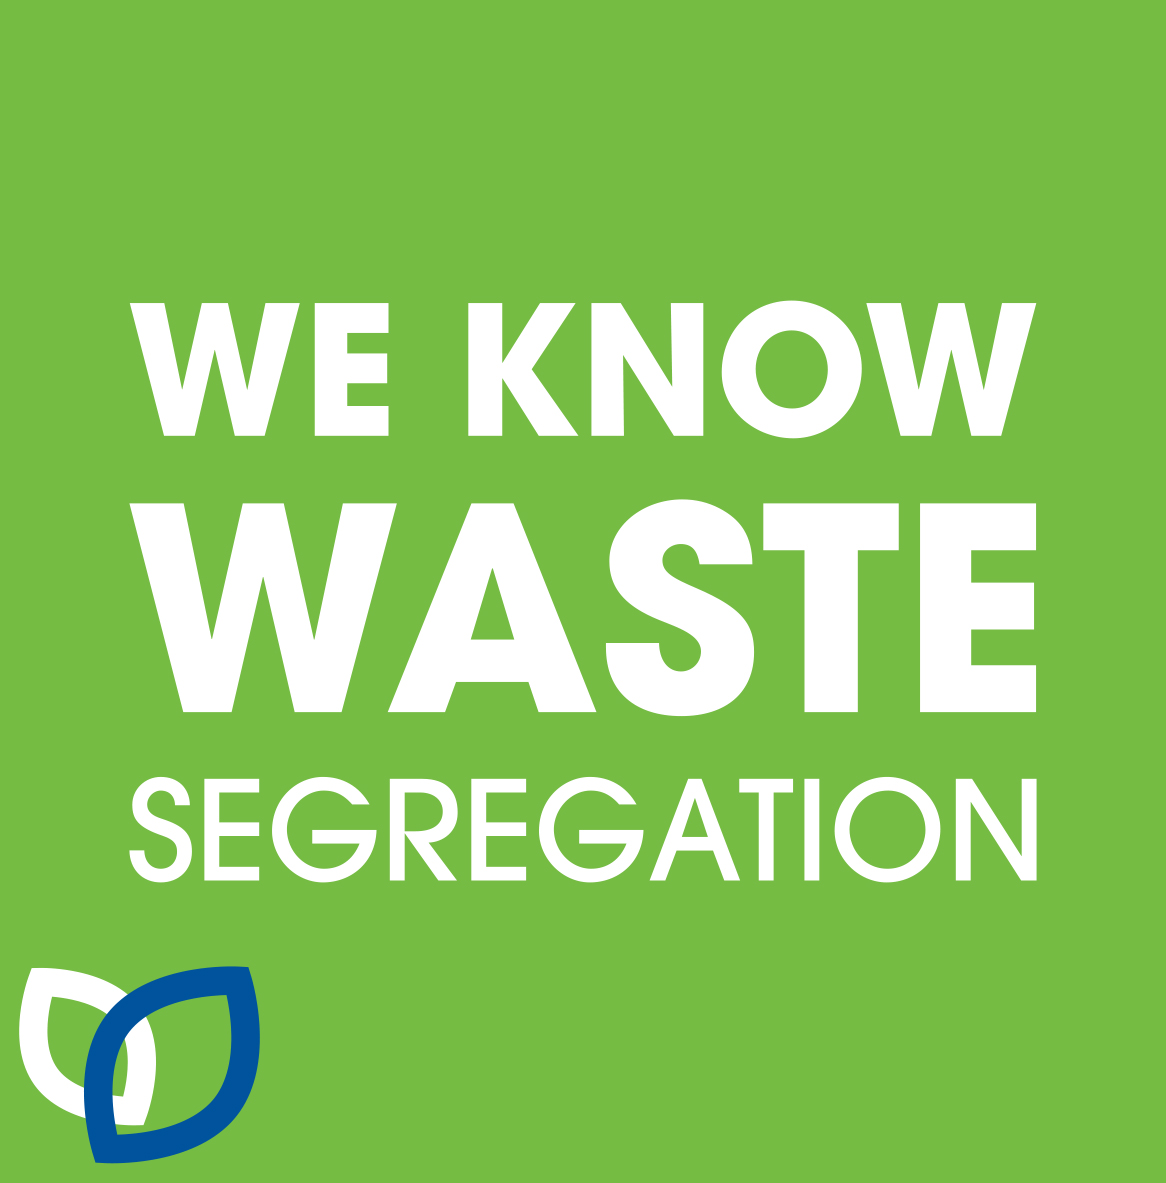 We know clinical and offensive waste segregation